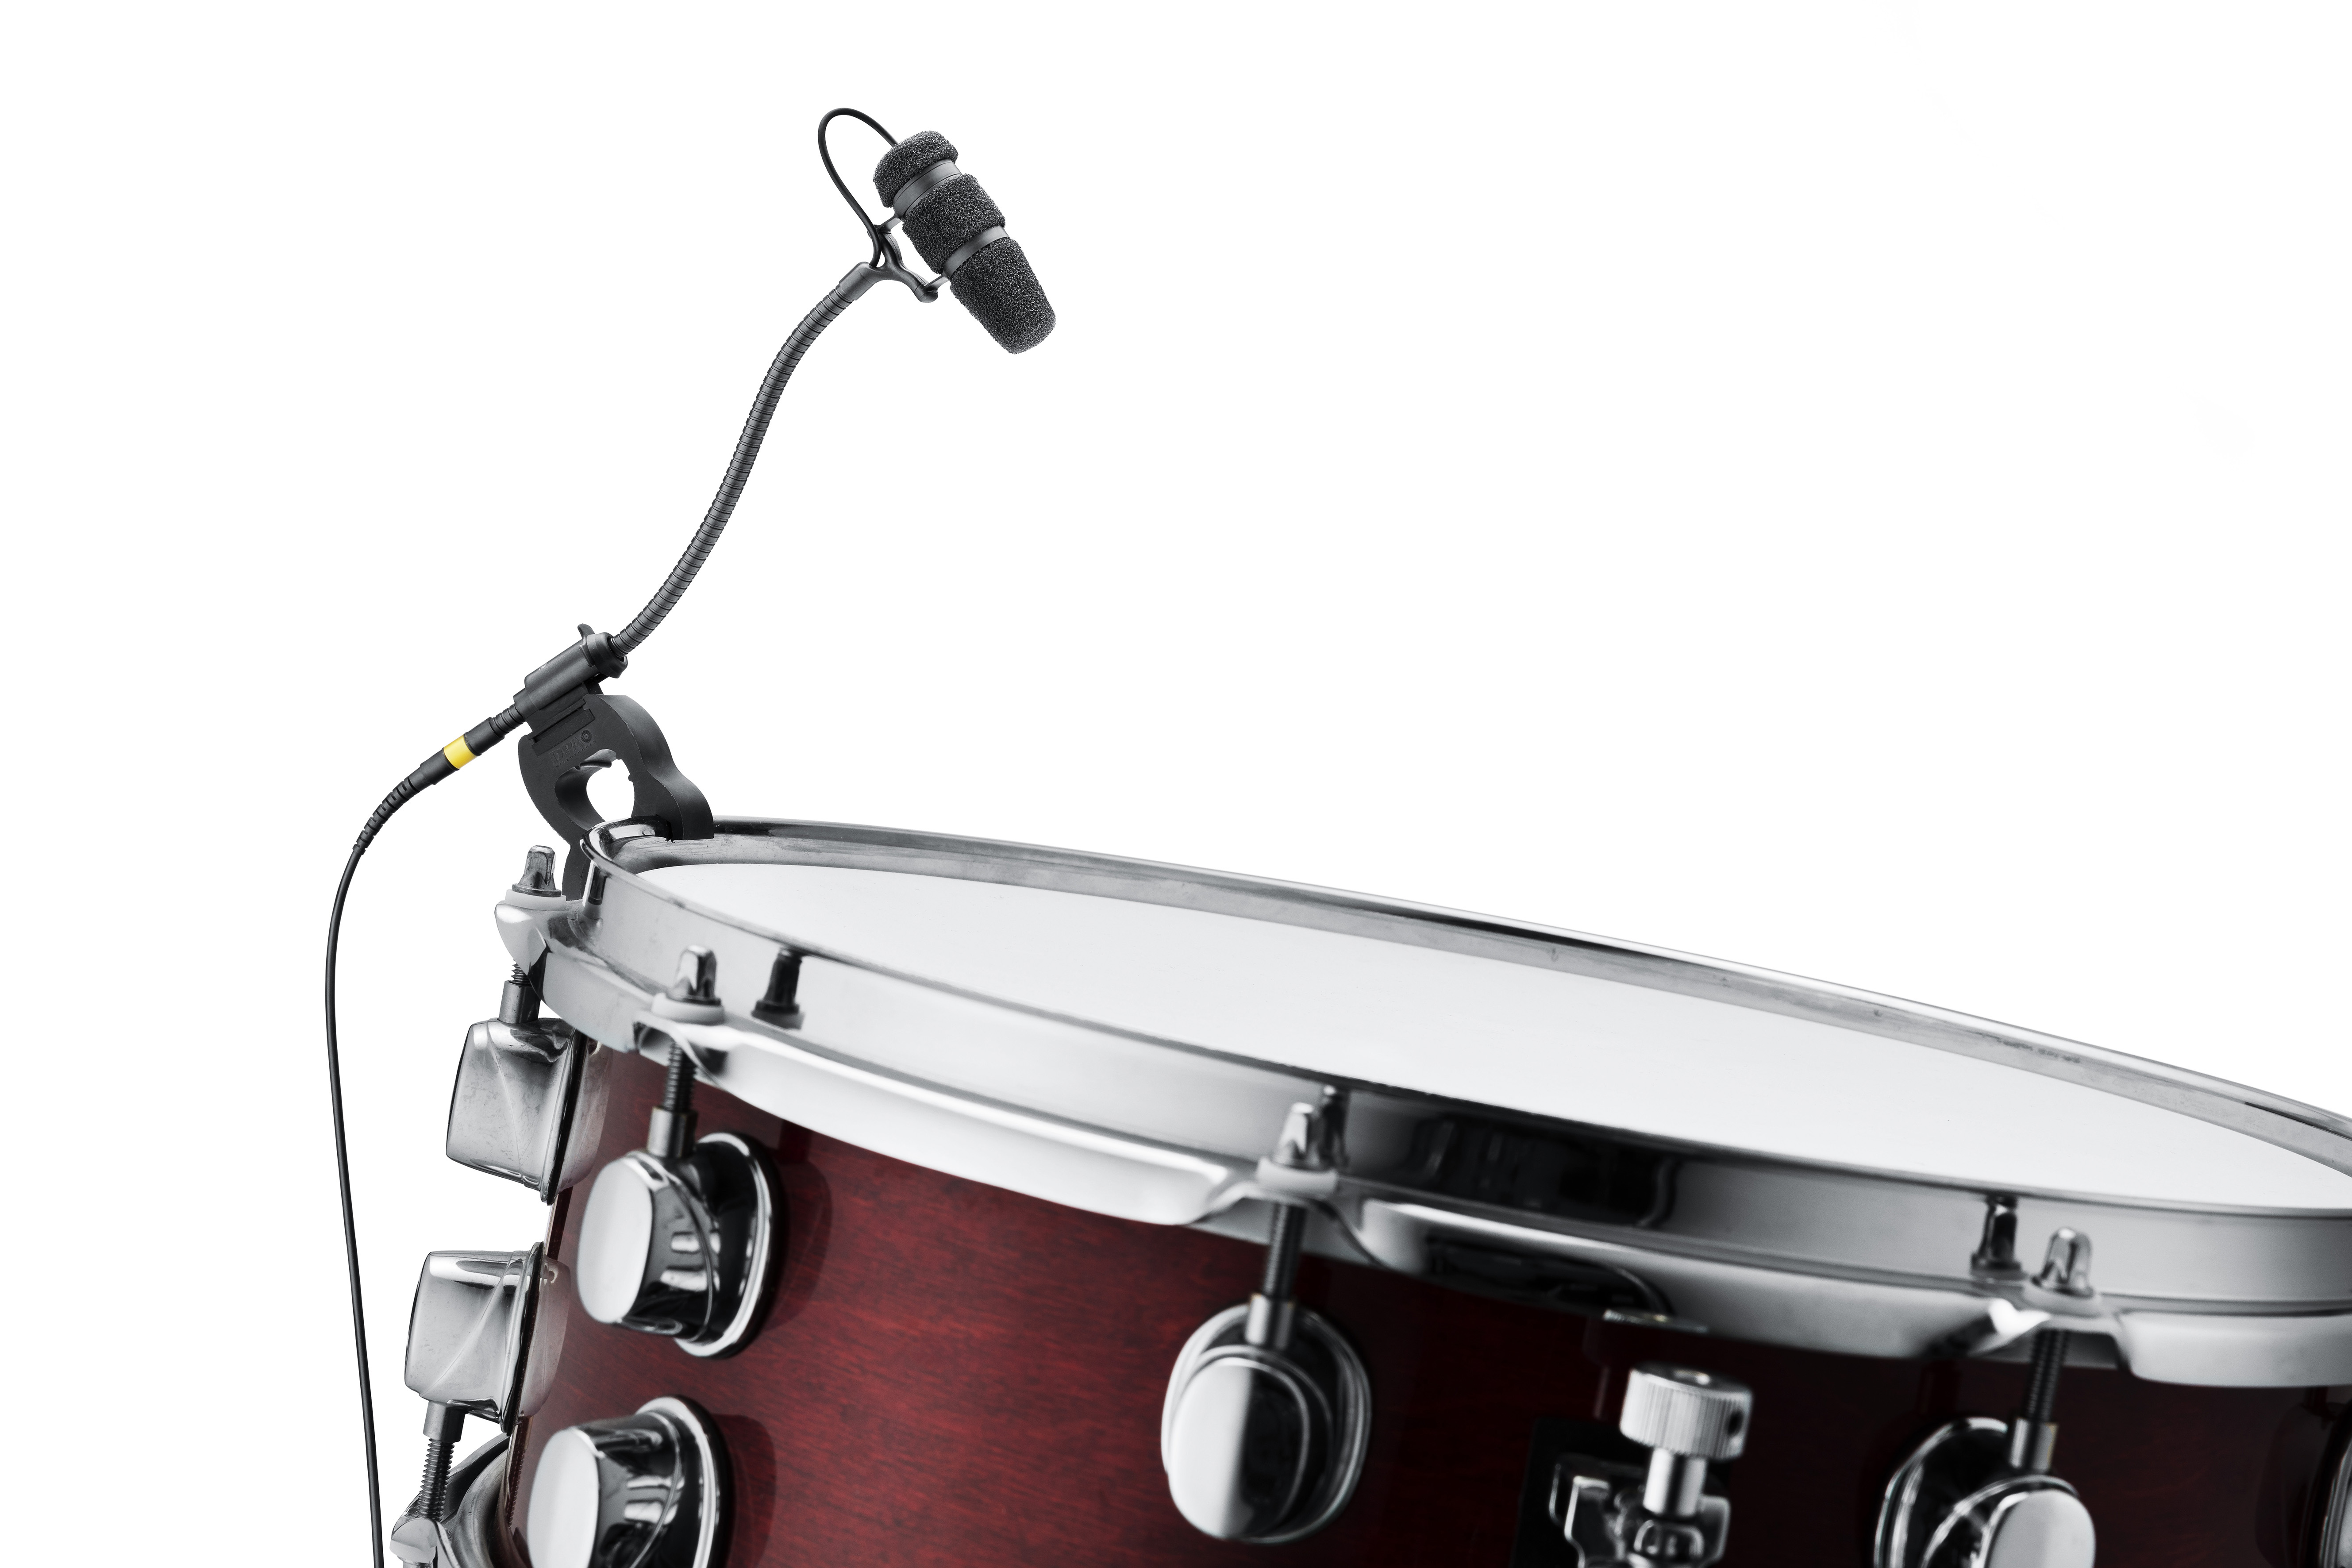 CORE4099-on-Snare-Drum.jpg